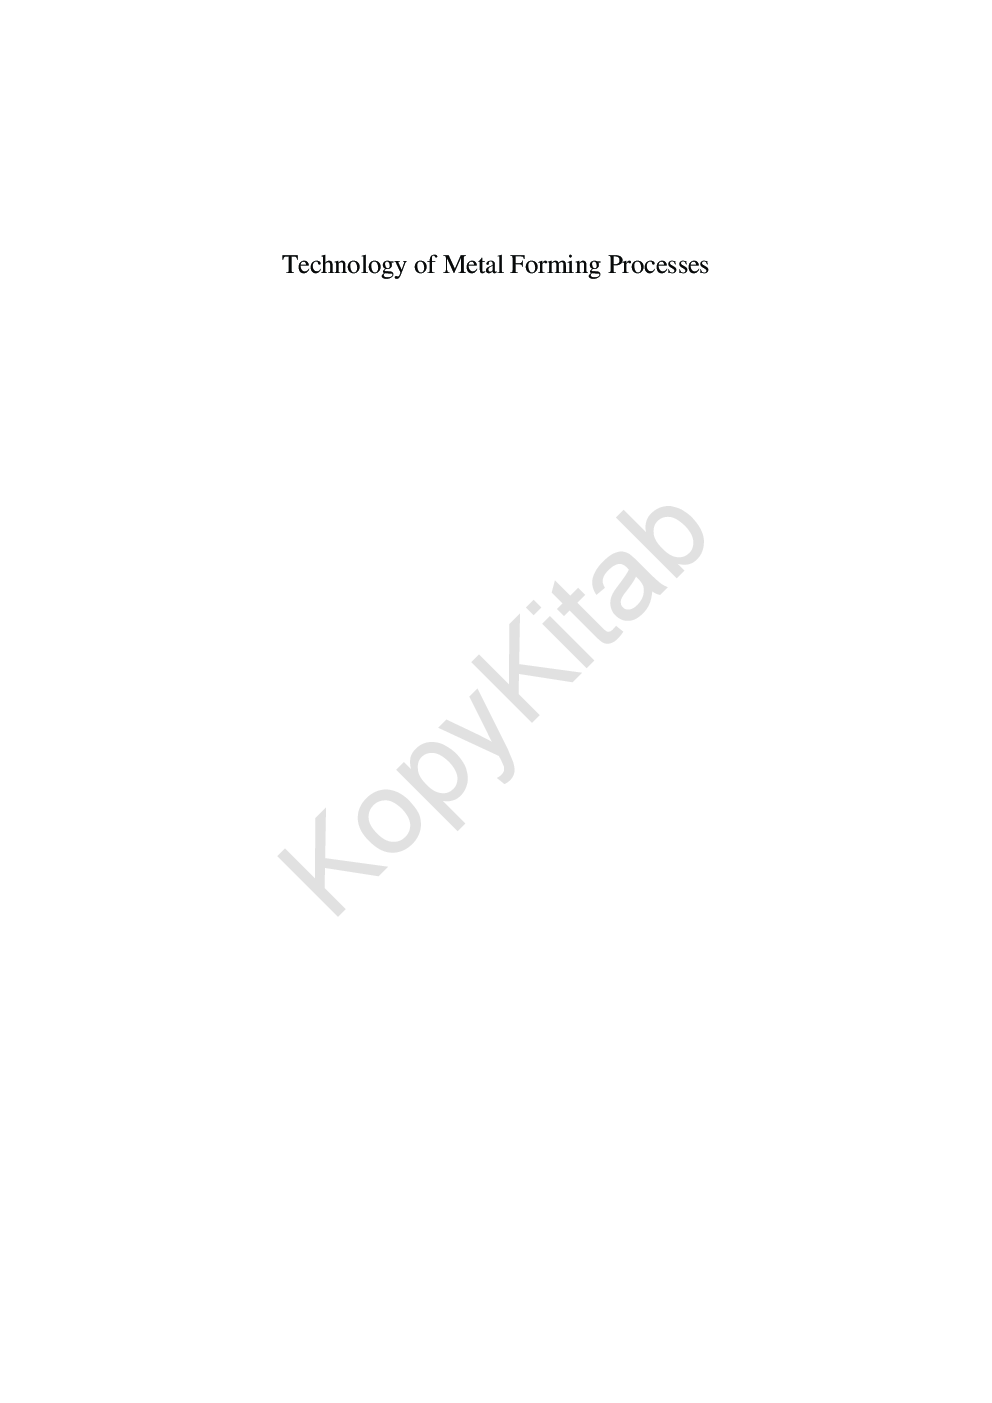 Technology of metal forming processes by surender kumar pdf get this ebook snapshot description fandeluxe Image collections